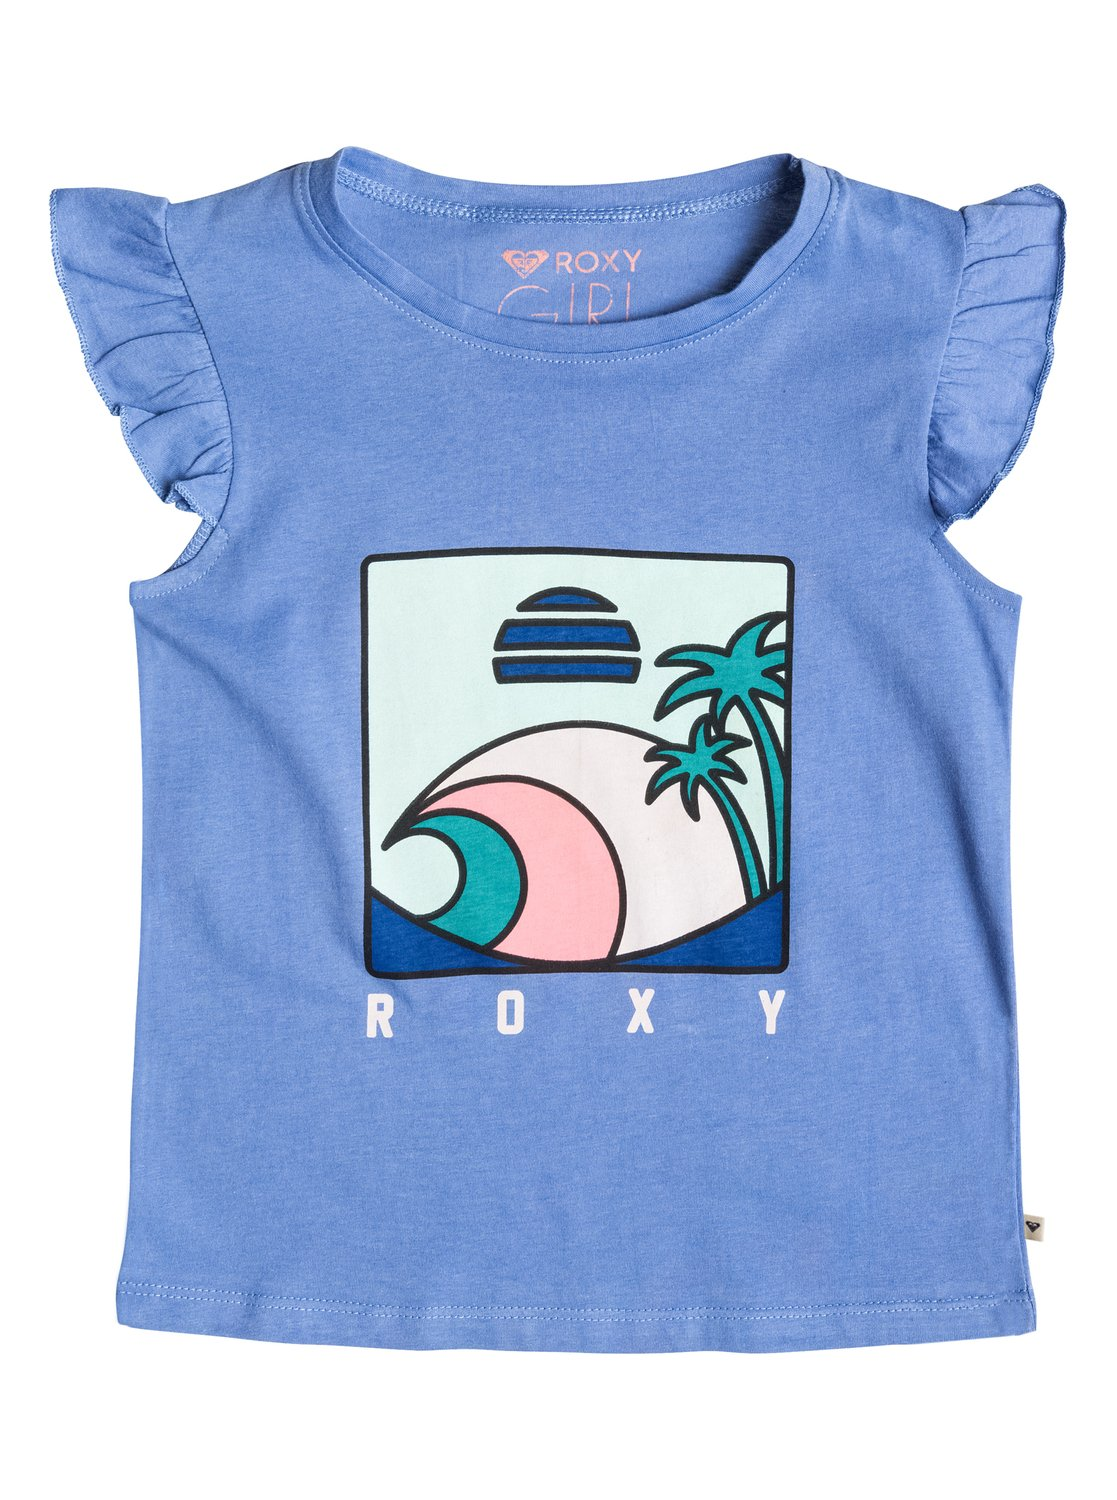 Endless Dream California - Cap Sleeve T-Shirt - Roxy<br>